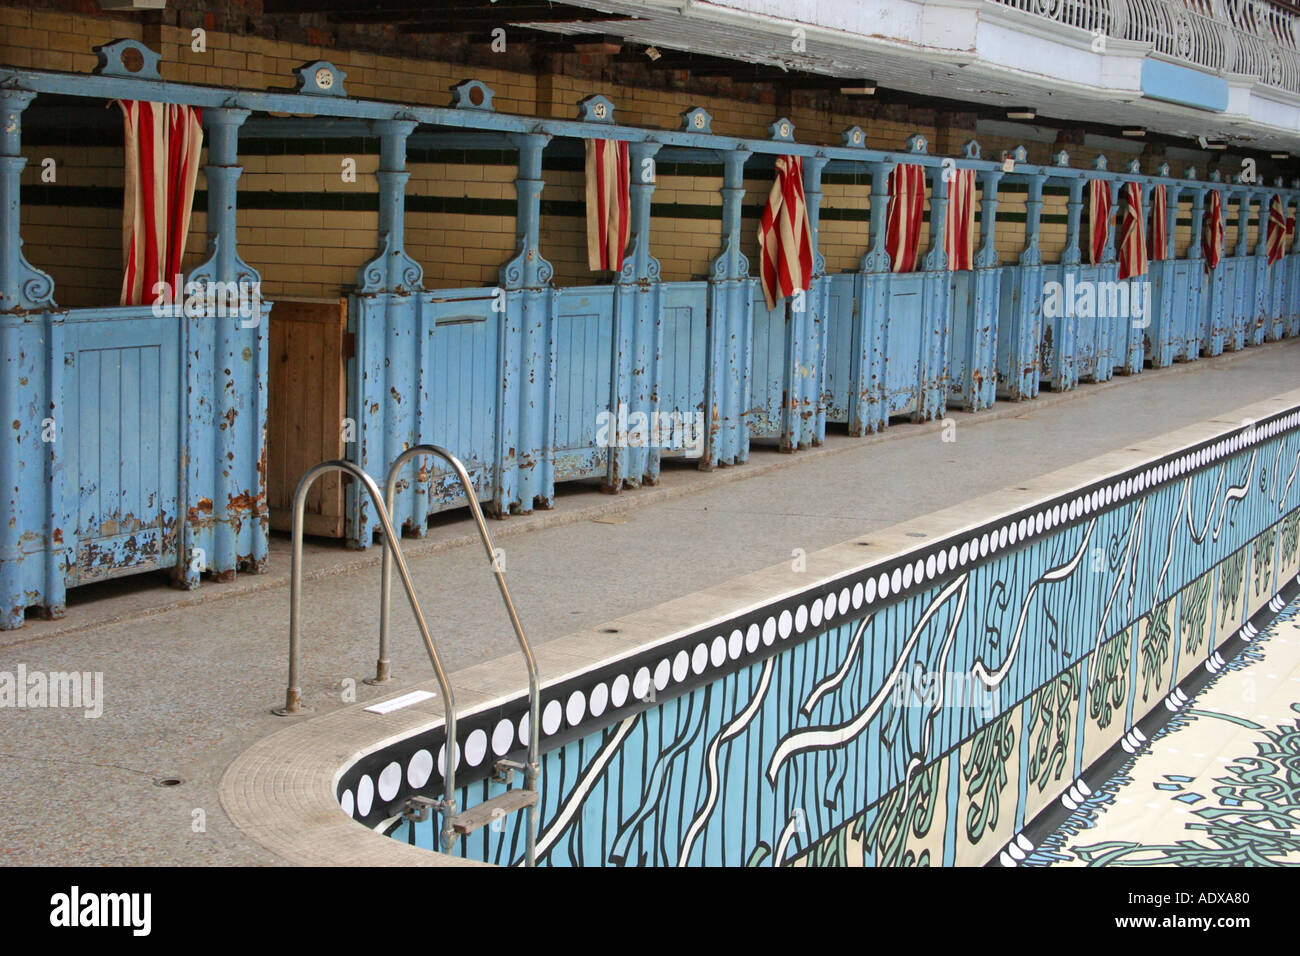 Victoria Baths Hathersage Road Longsight Manchester UK - Stock Image